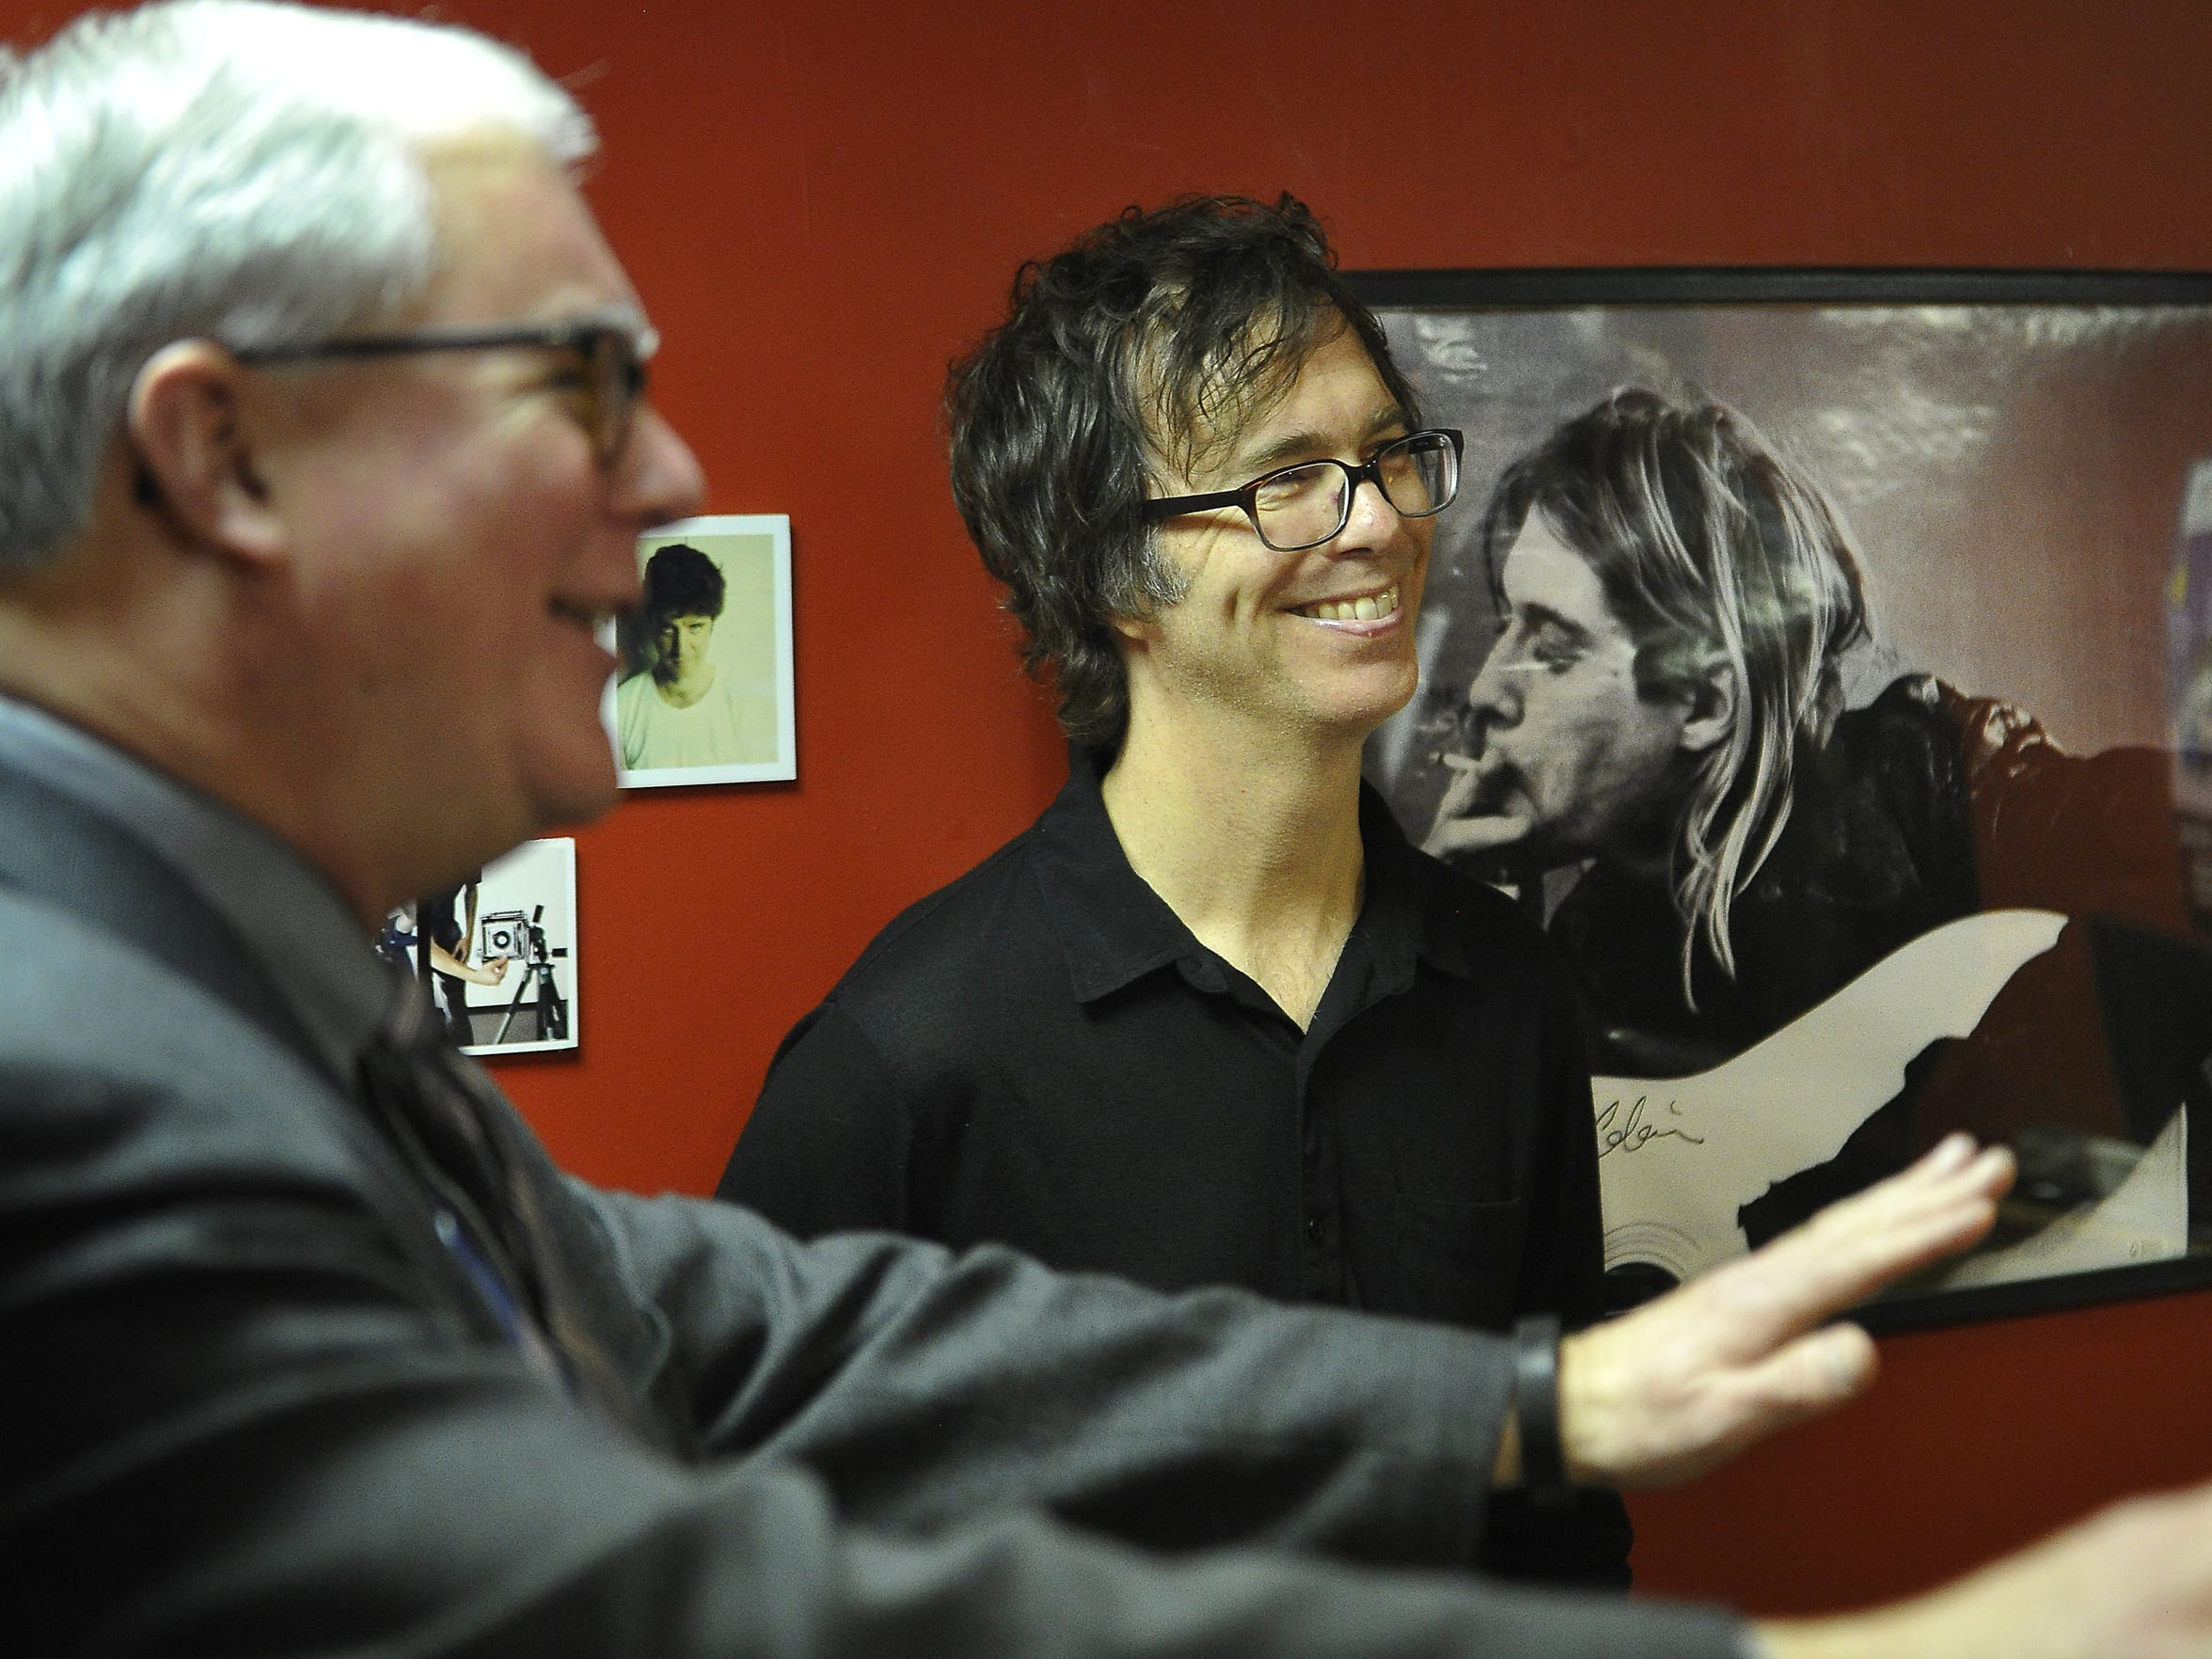 Ben Folds, center, is all smiles as he jokes with David